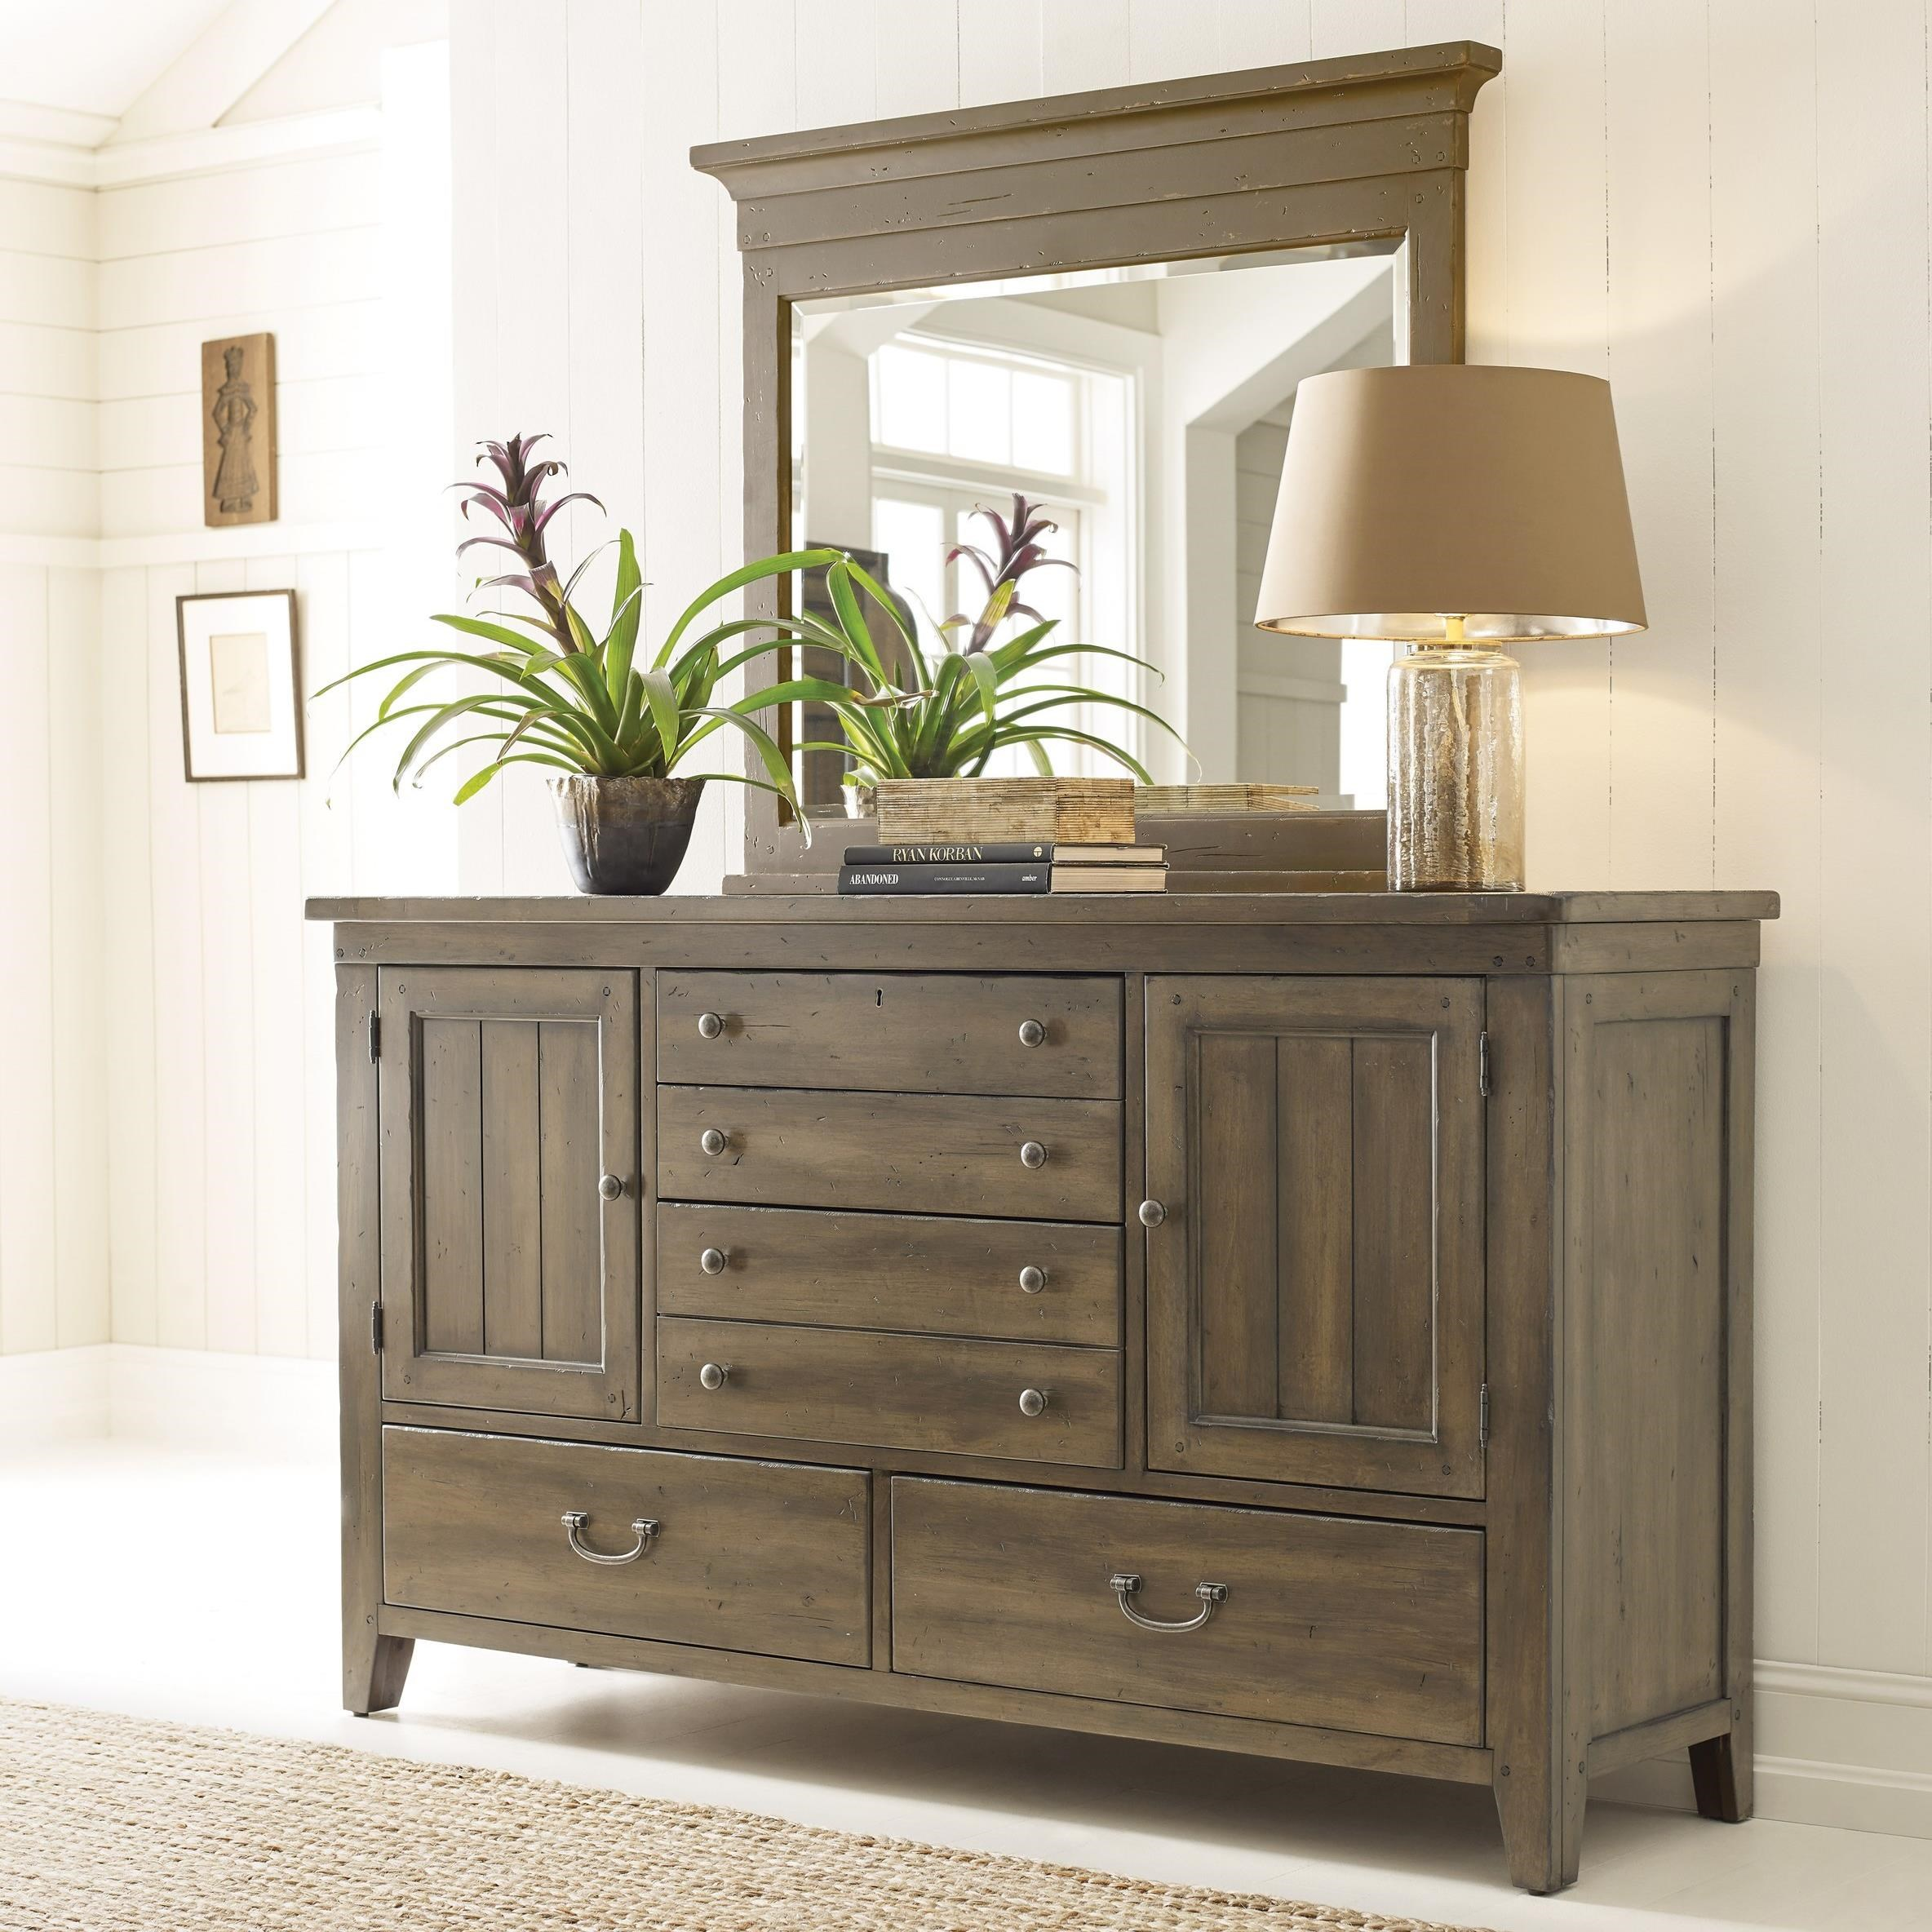 Mill House Dresser and Mirror Set by Kincaid Furniture at Johnny Janosik